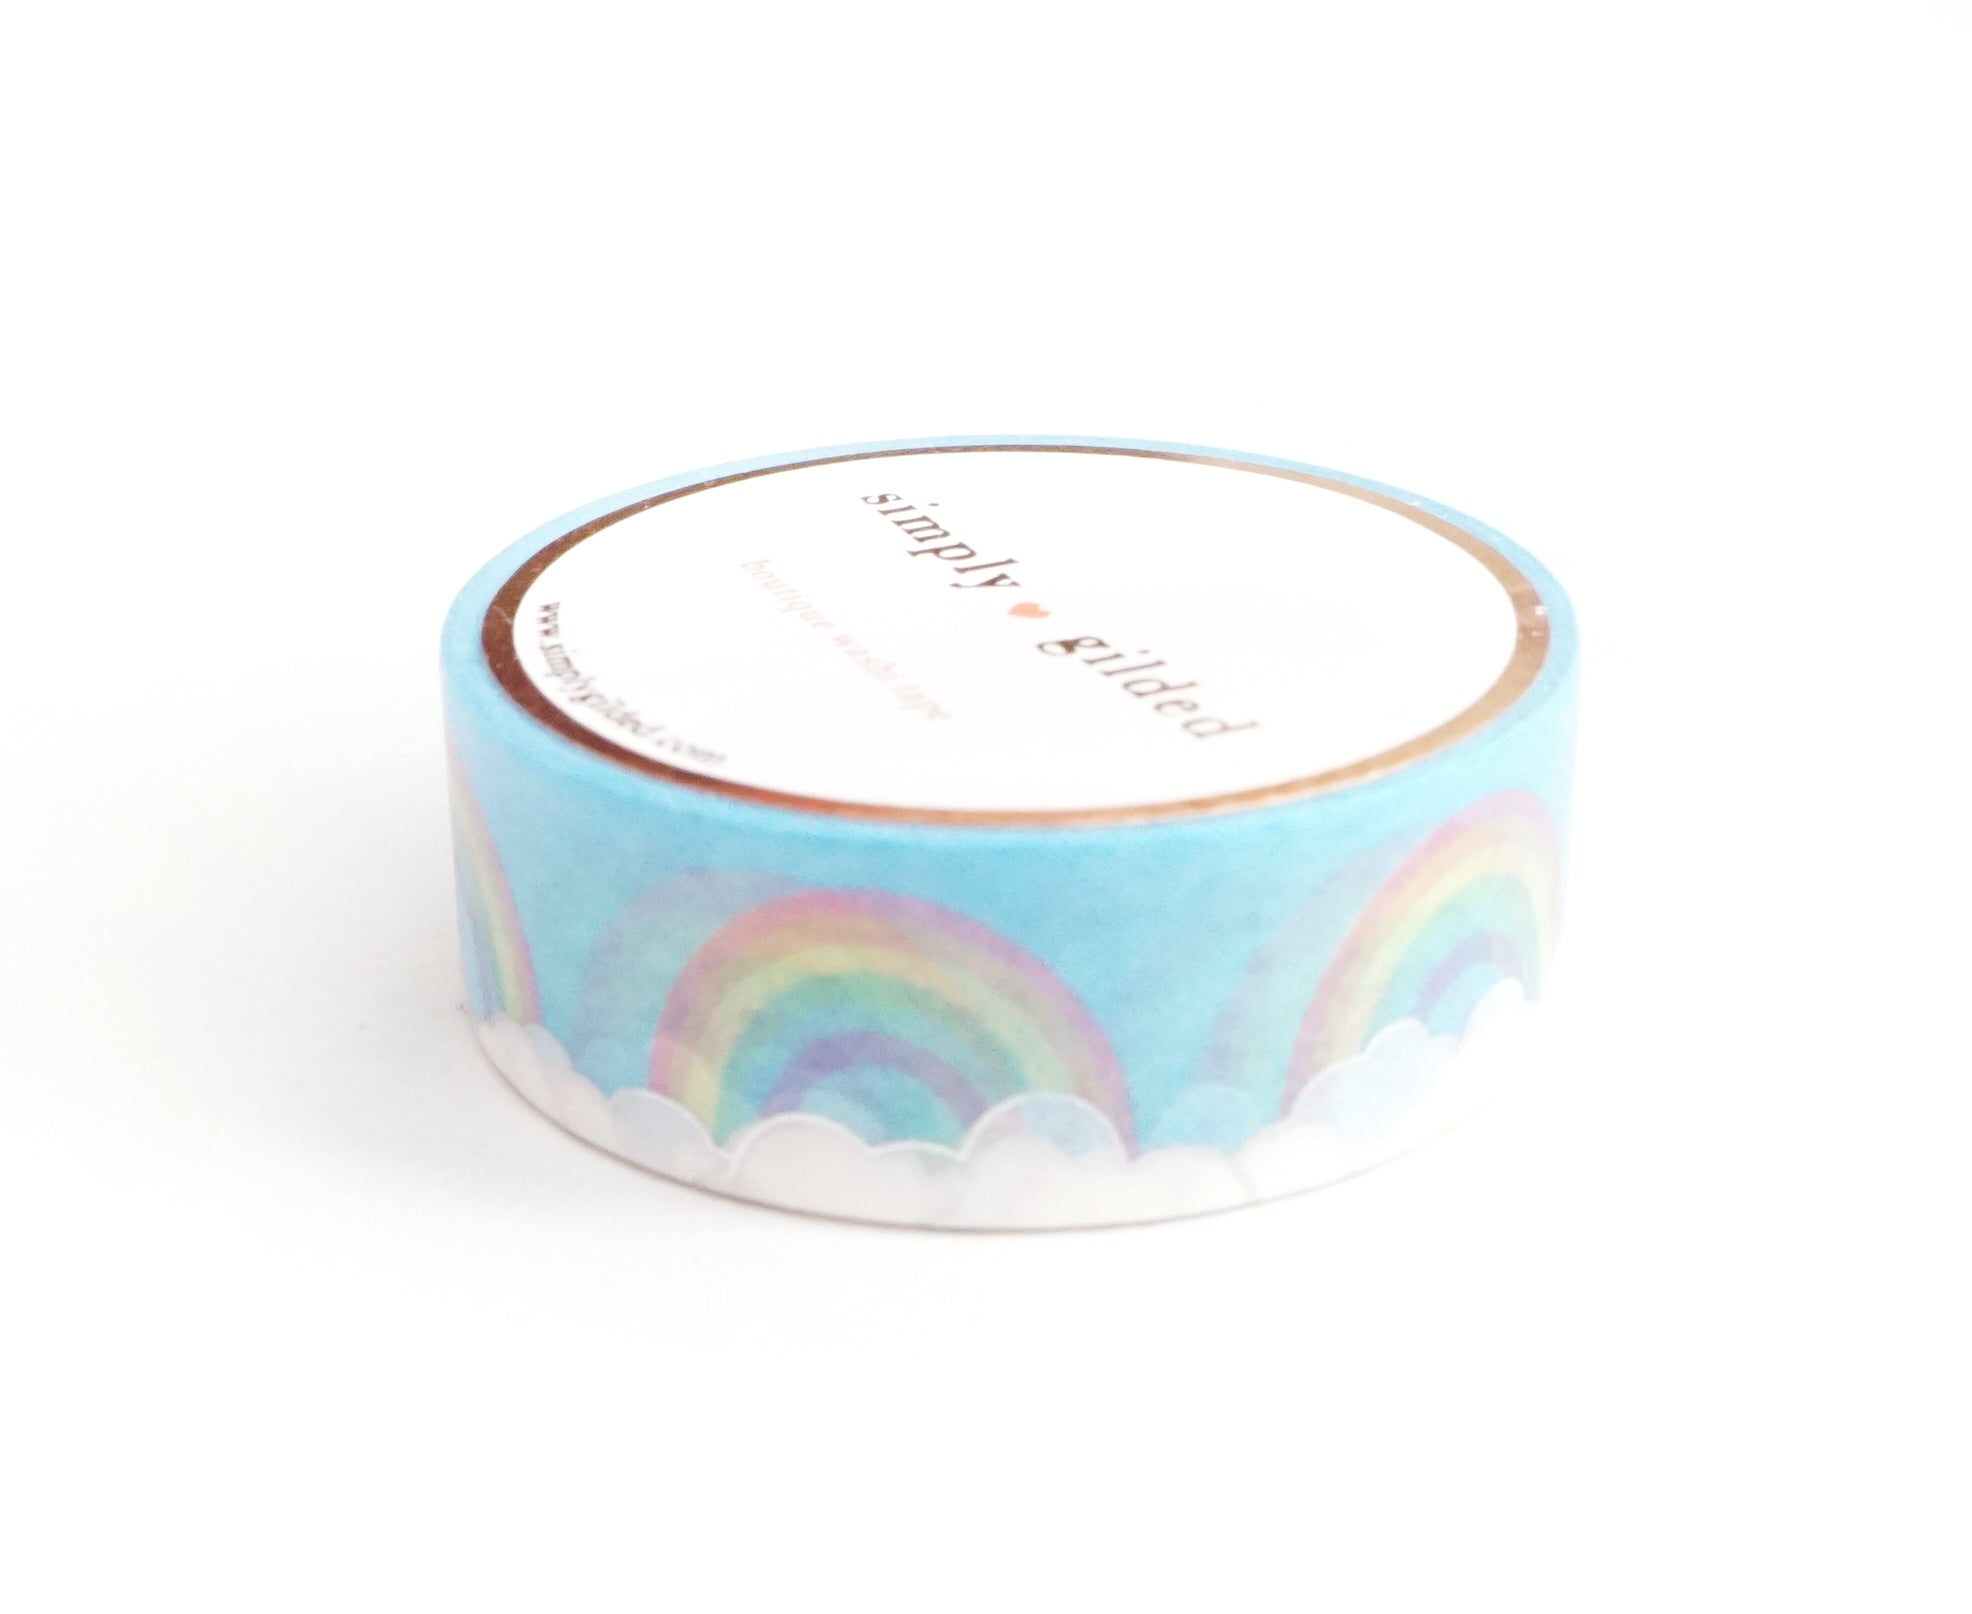 WASHI TAPE 15mm - SILVER HOLO LINING Rainbow clouds + silver holographic foil (March 17 Release)